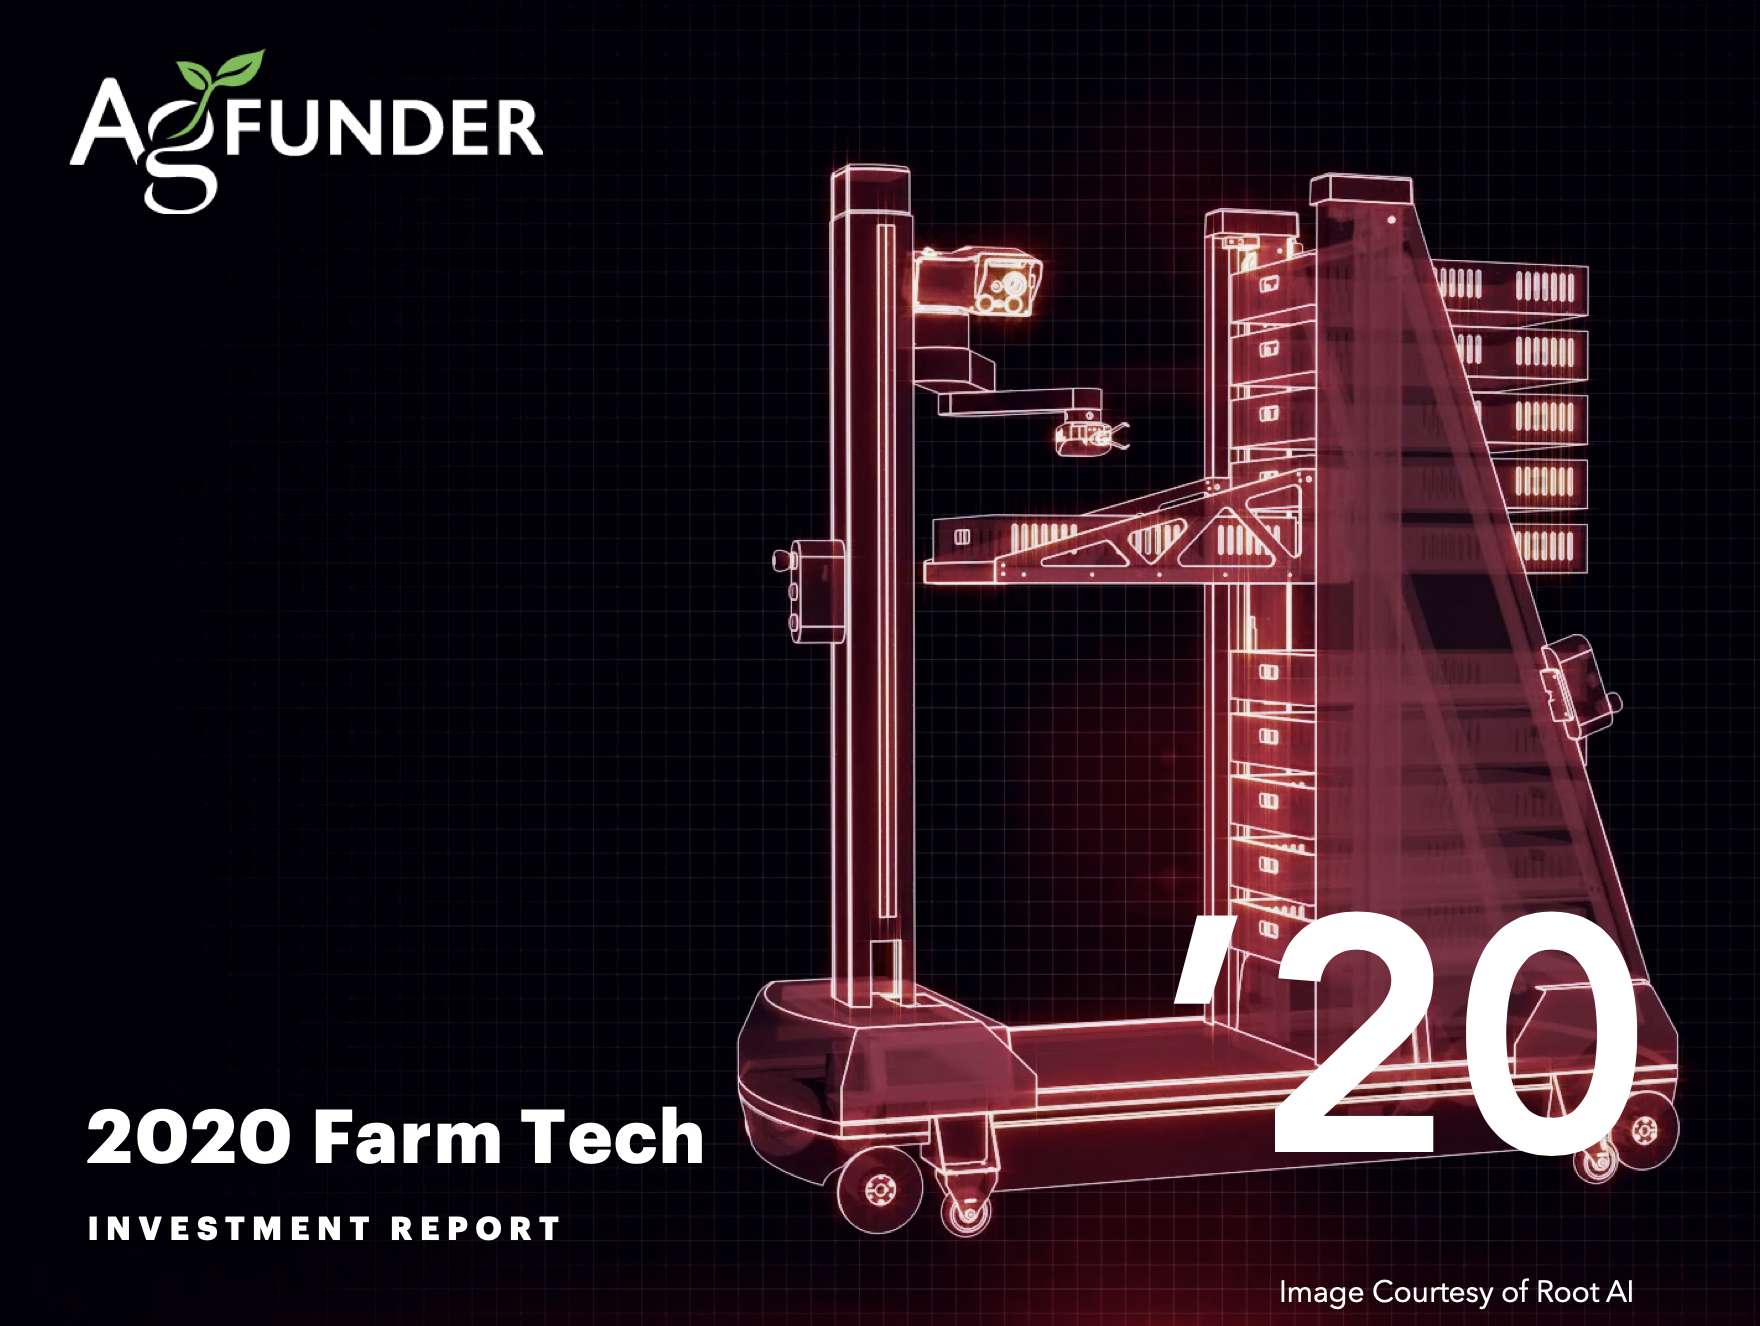 2020 Farm Tech Investment Report